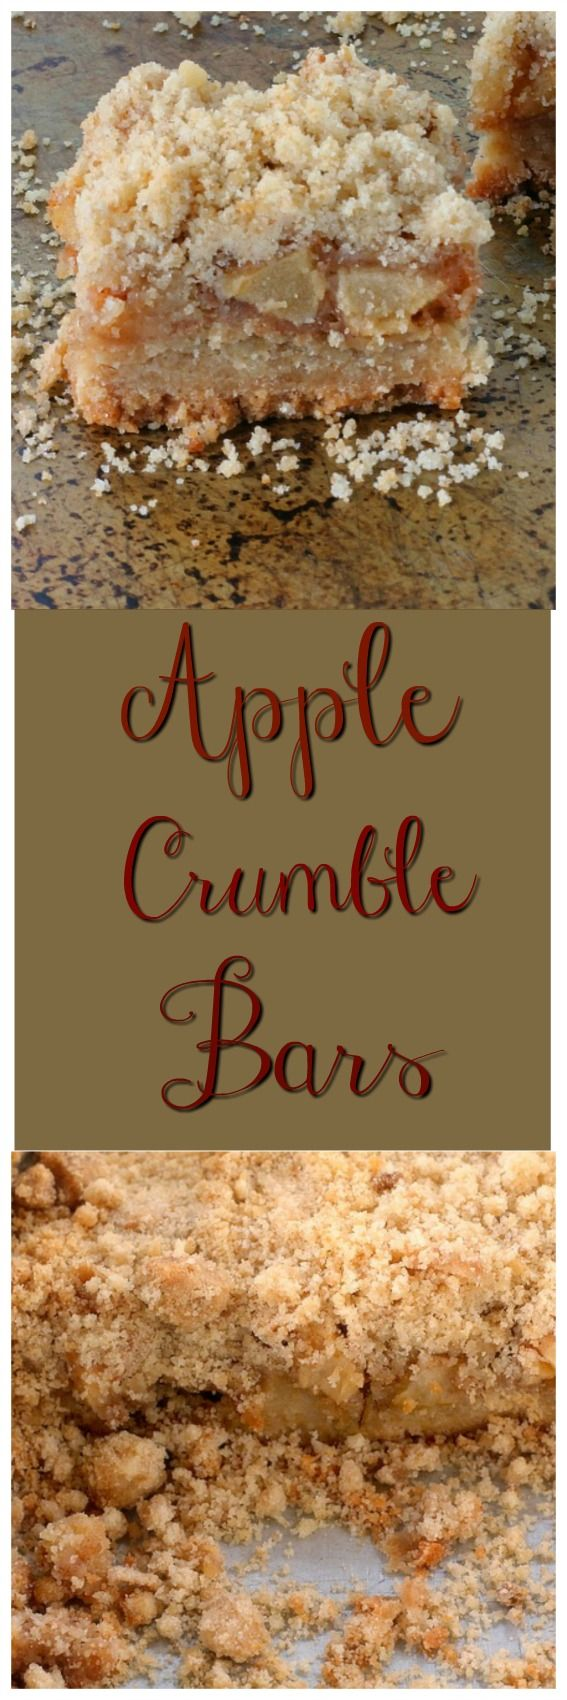 Apple Crumble Bars are crumbs from top to bottom.  The bottom layer is crumbs, the apples are coated with crumbs and the topping is crumbs.